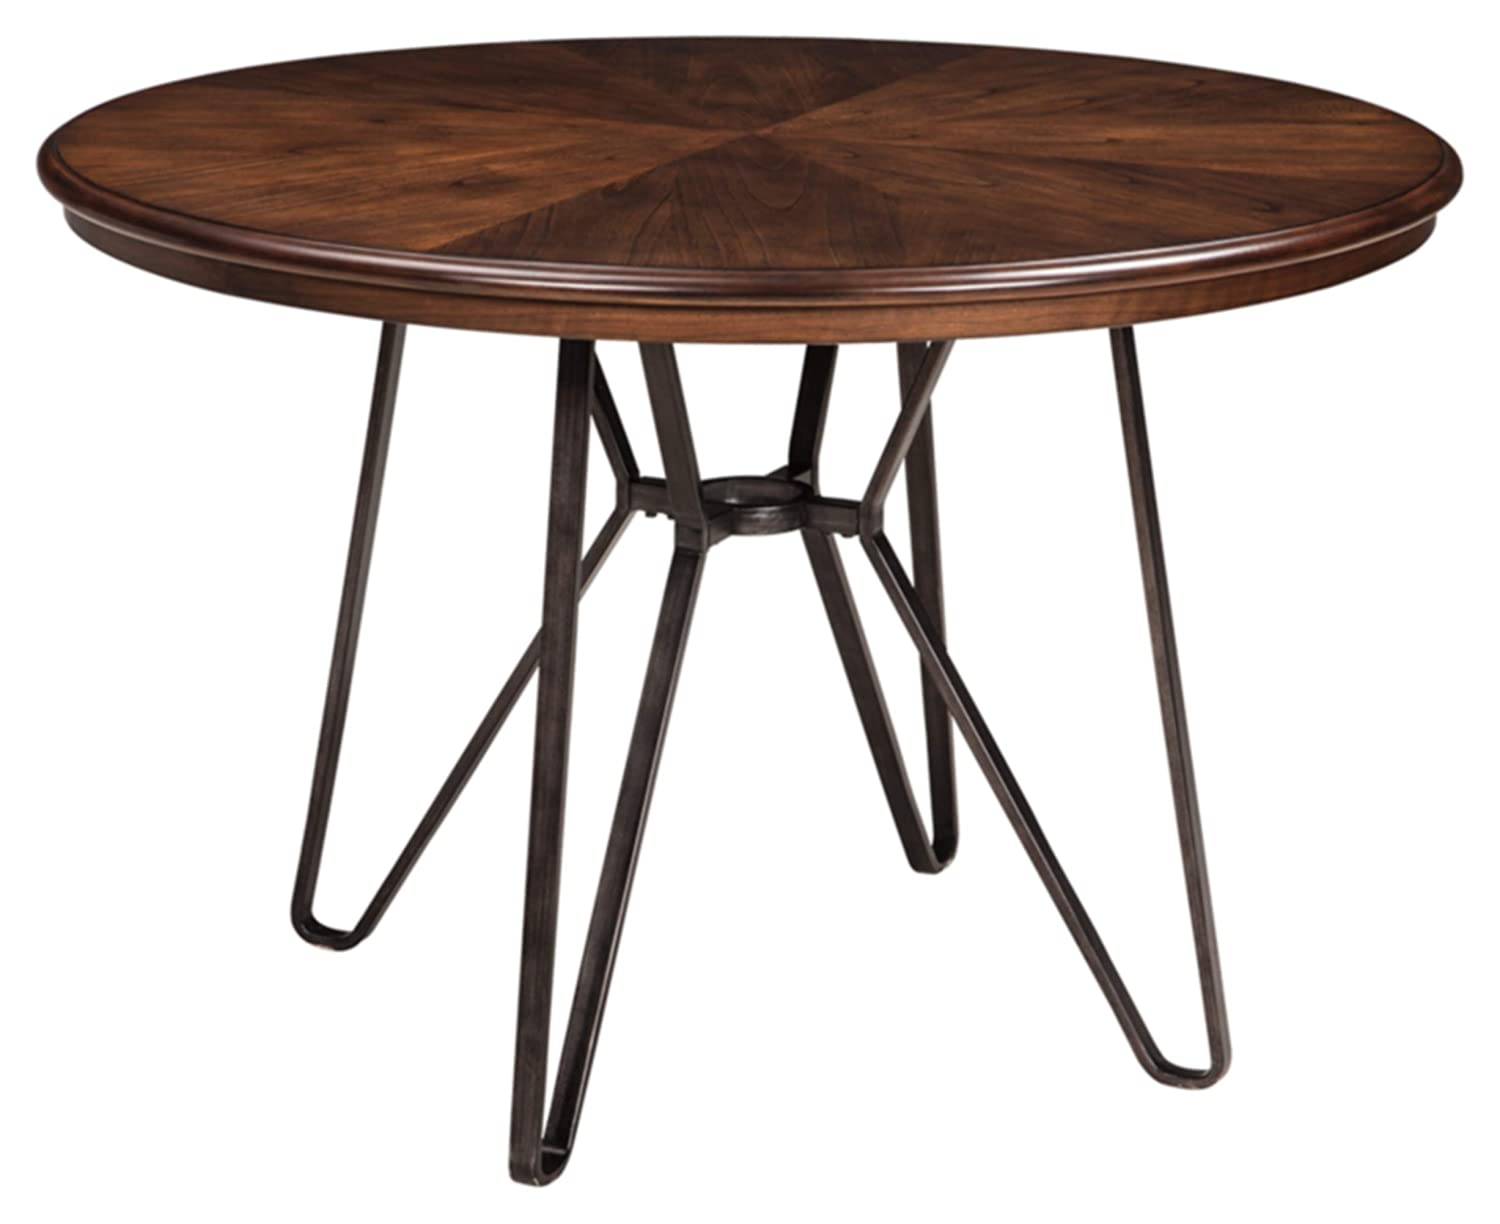 Ashley Furniture Signature Design – Centiar Dining Room Table – Mid Century Modern Style – Round – Rustic Brown